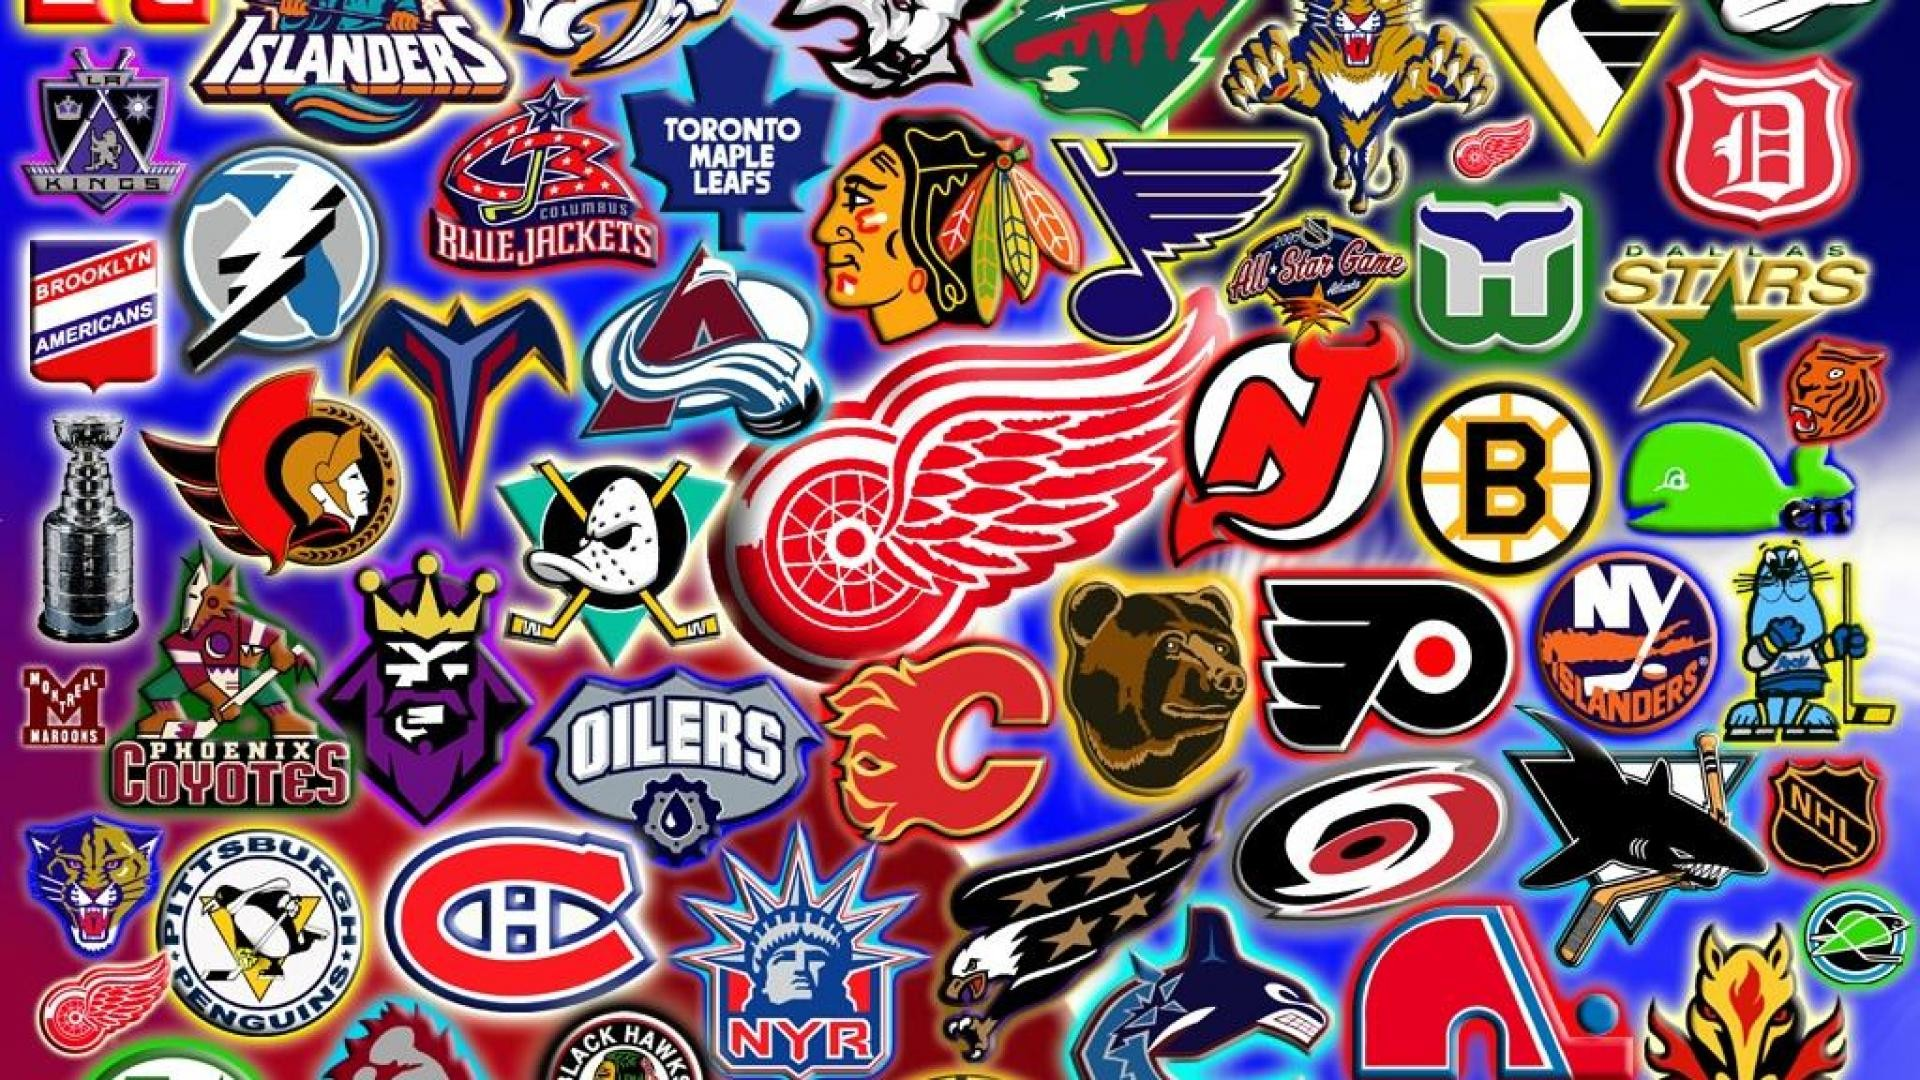 Nhl Wallpaper HD Baseball Wallpaper Sport Nhl 1920x1080 1920x1080